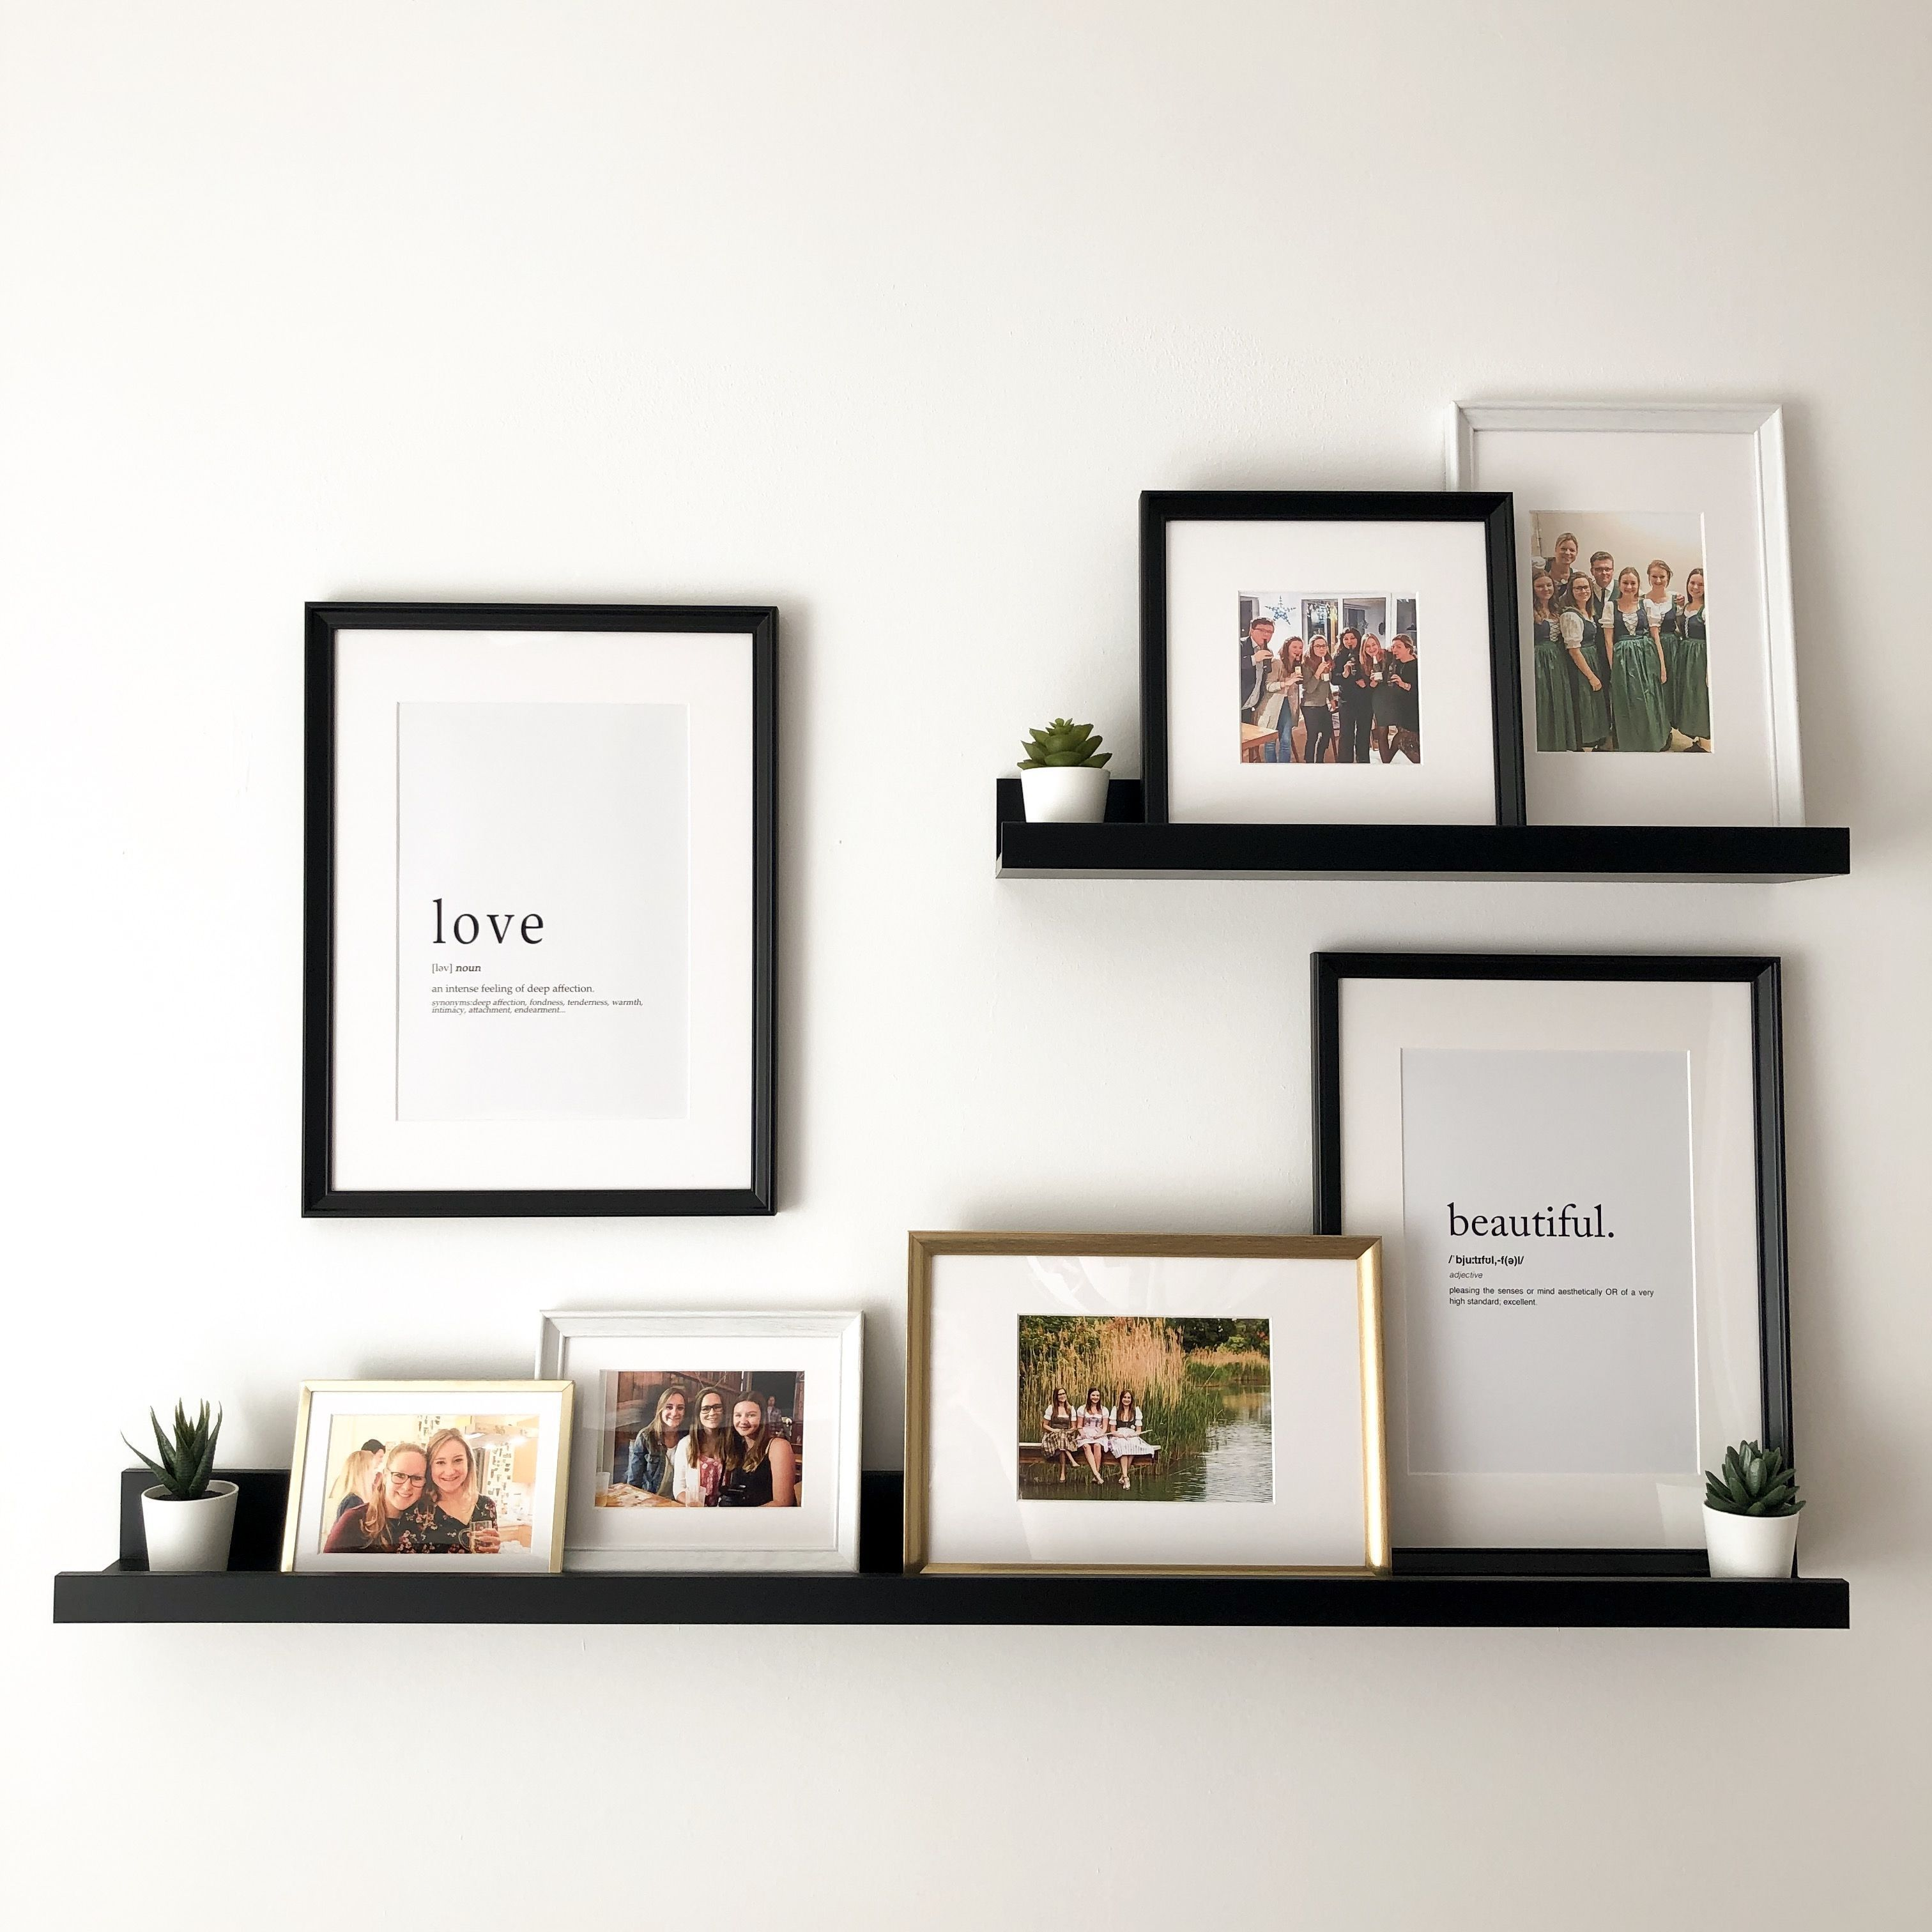 Ikea Picture Ledge #homedecor #homestyle #pics #fr - Murales Pared Exterior